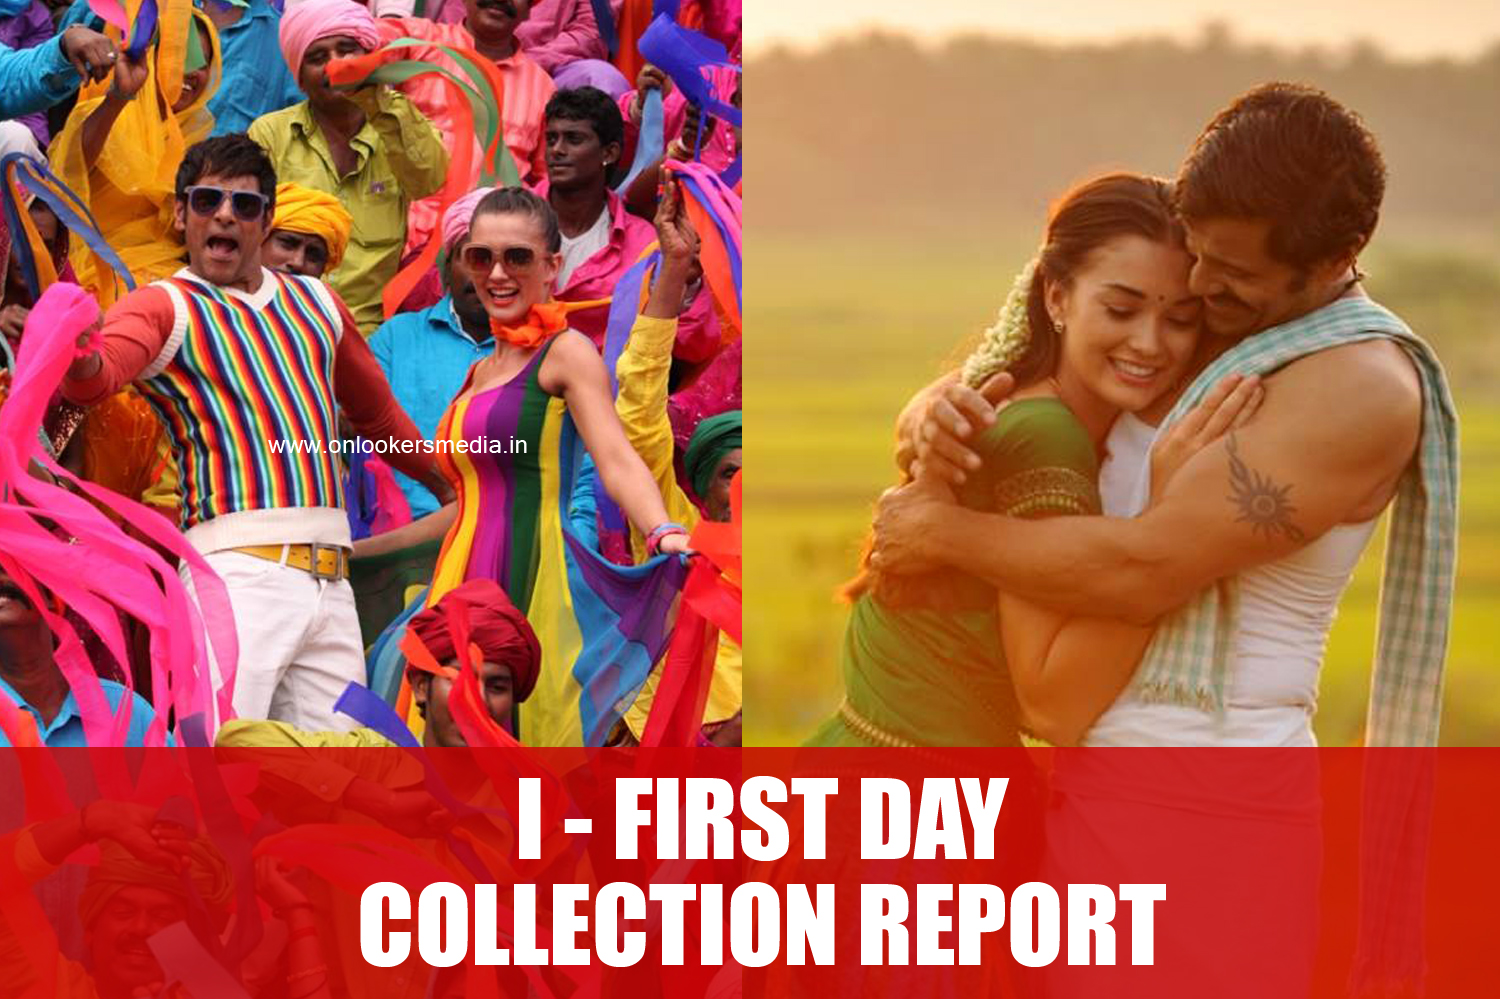 I movie first day collection report-Vikram-Shankar-Amy Jackson-Suresh Gopi, Ai Movie-Onlookers Media